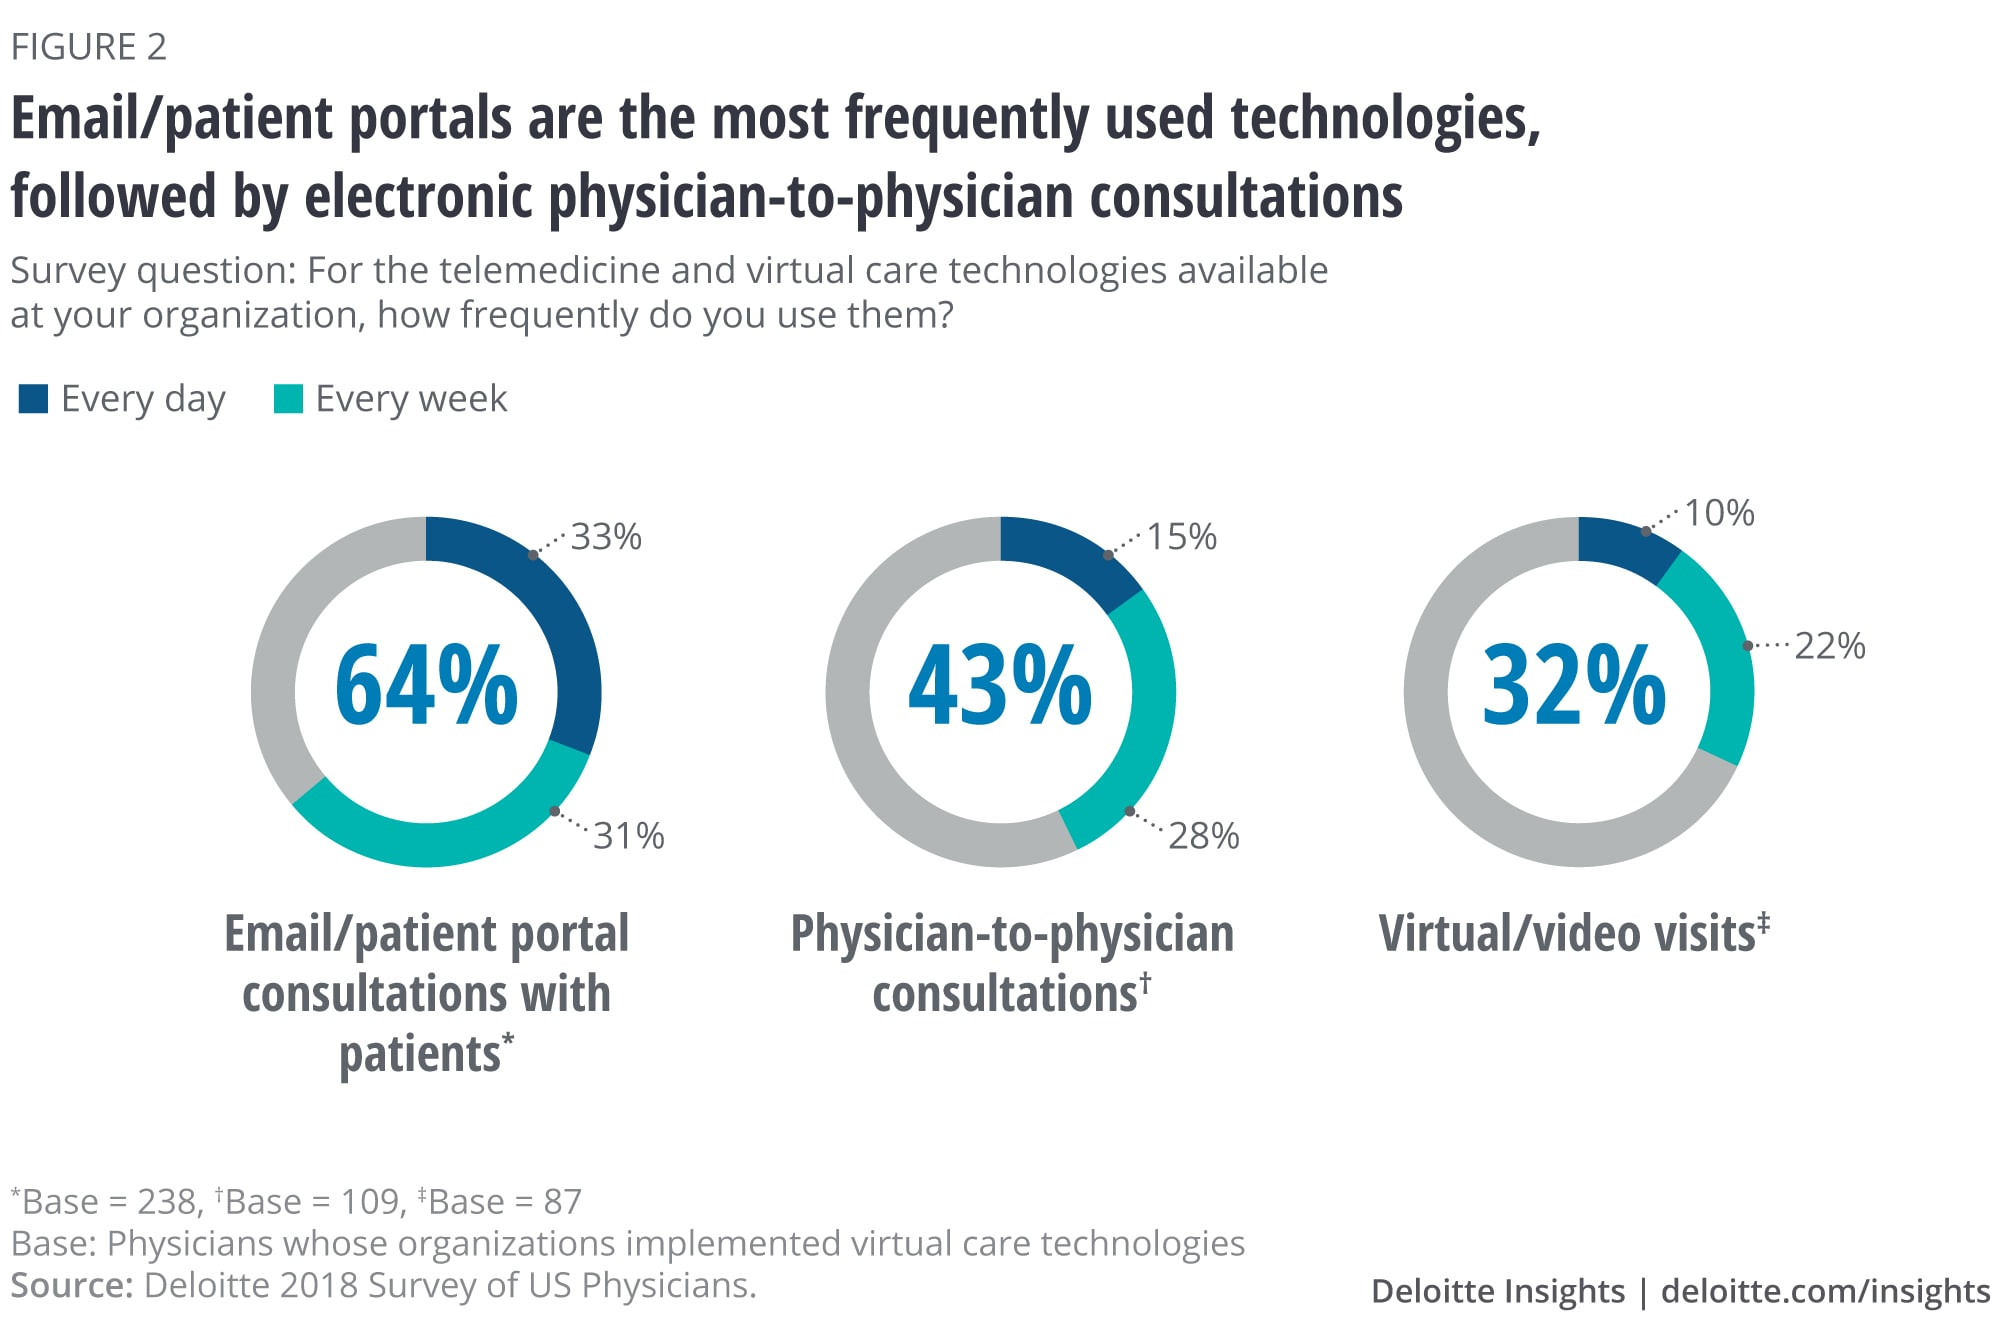 Email/patient portal is the most frequently used technology, followed by electronic physician-to-physician consultations